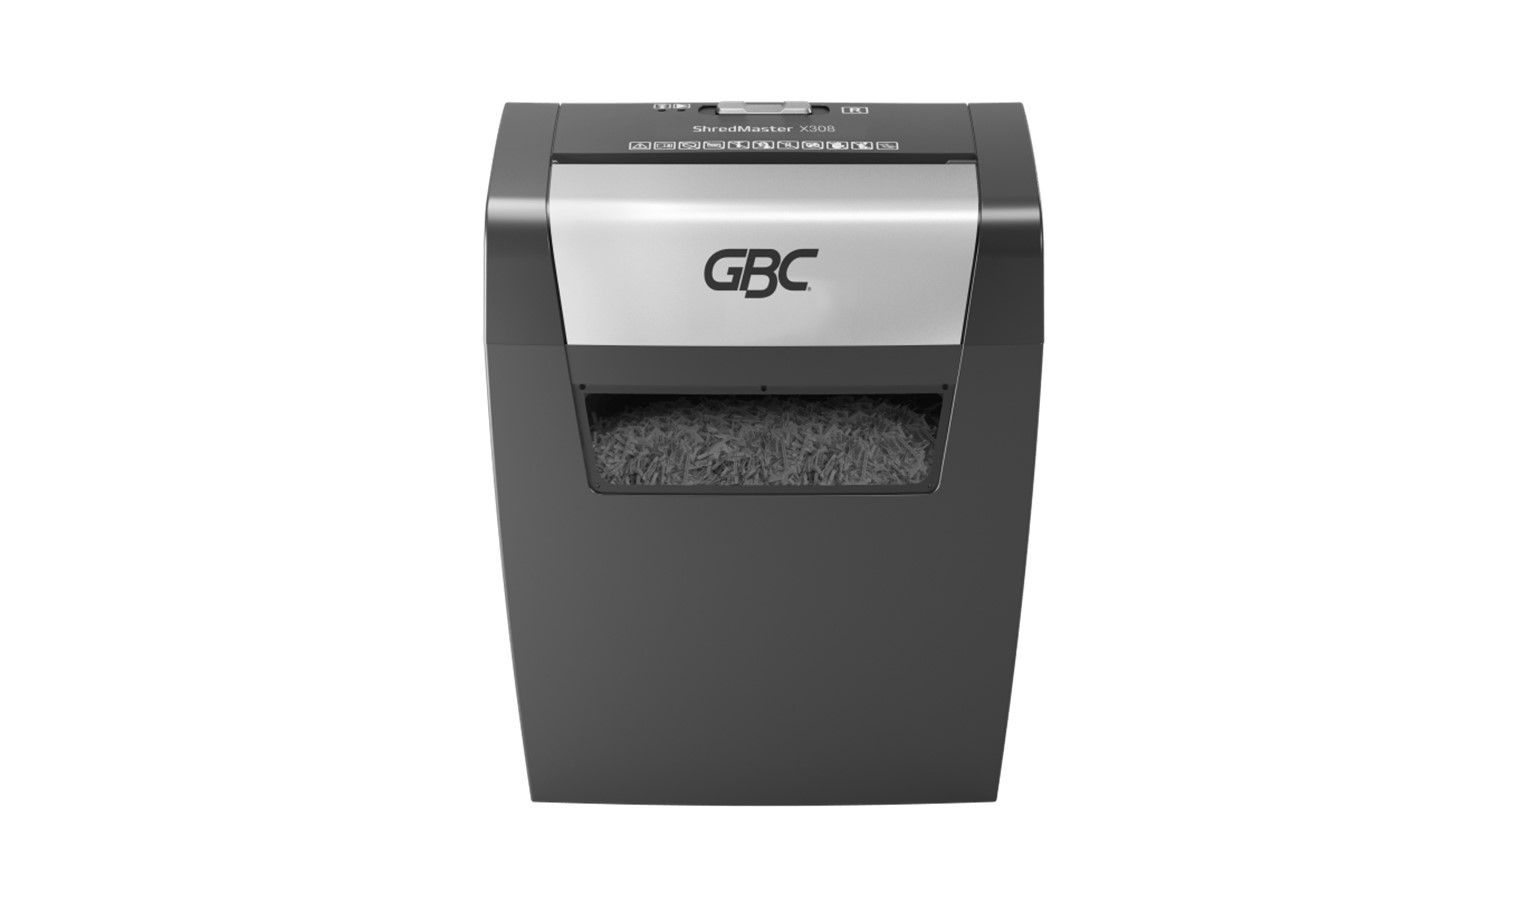 GBC ShredMaster X308 Cross Cut Shredder - Black